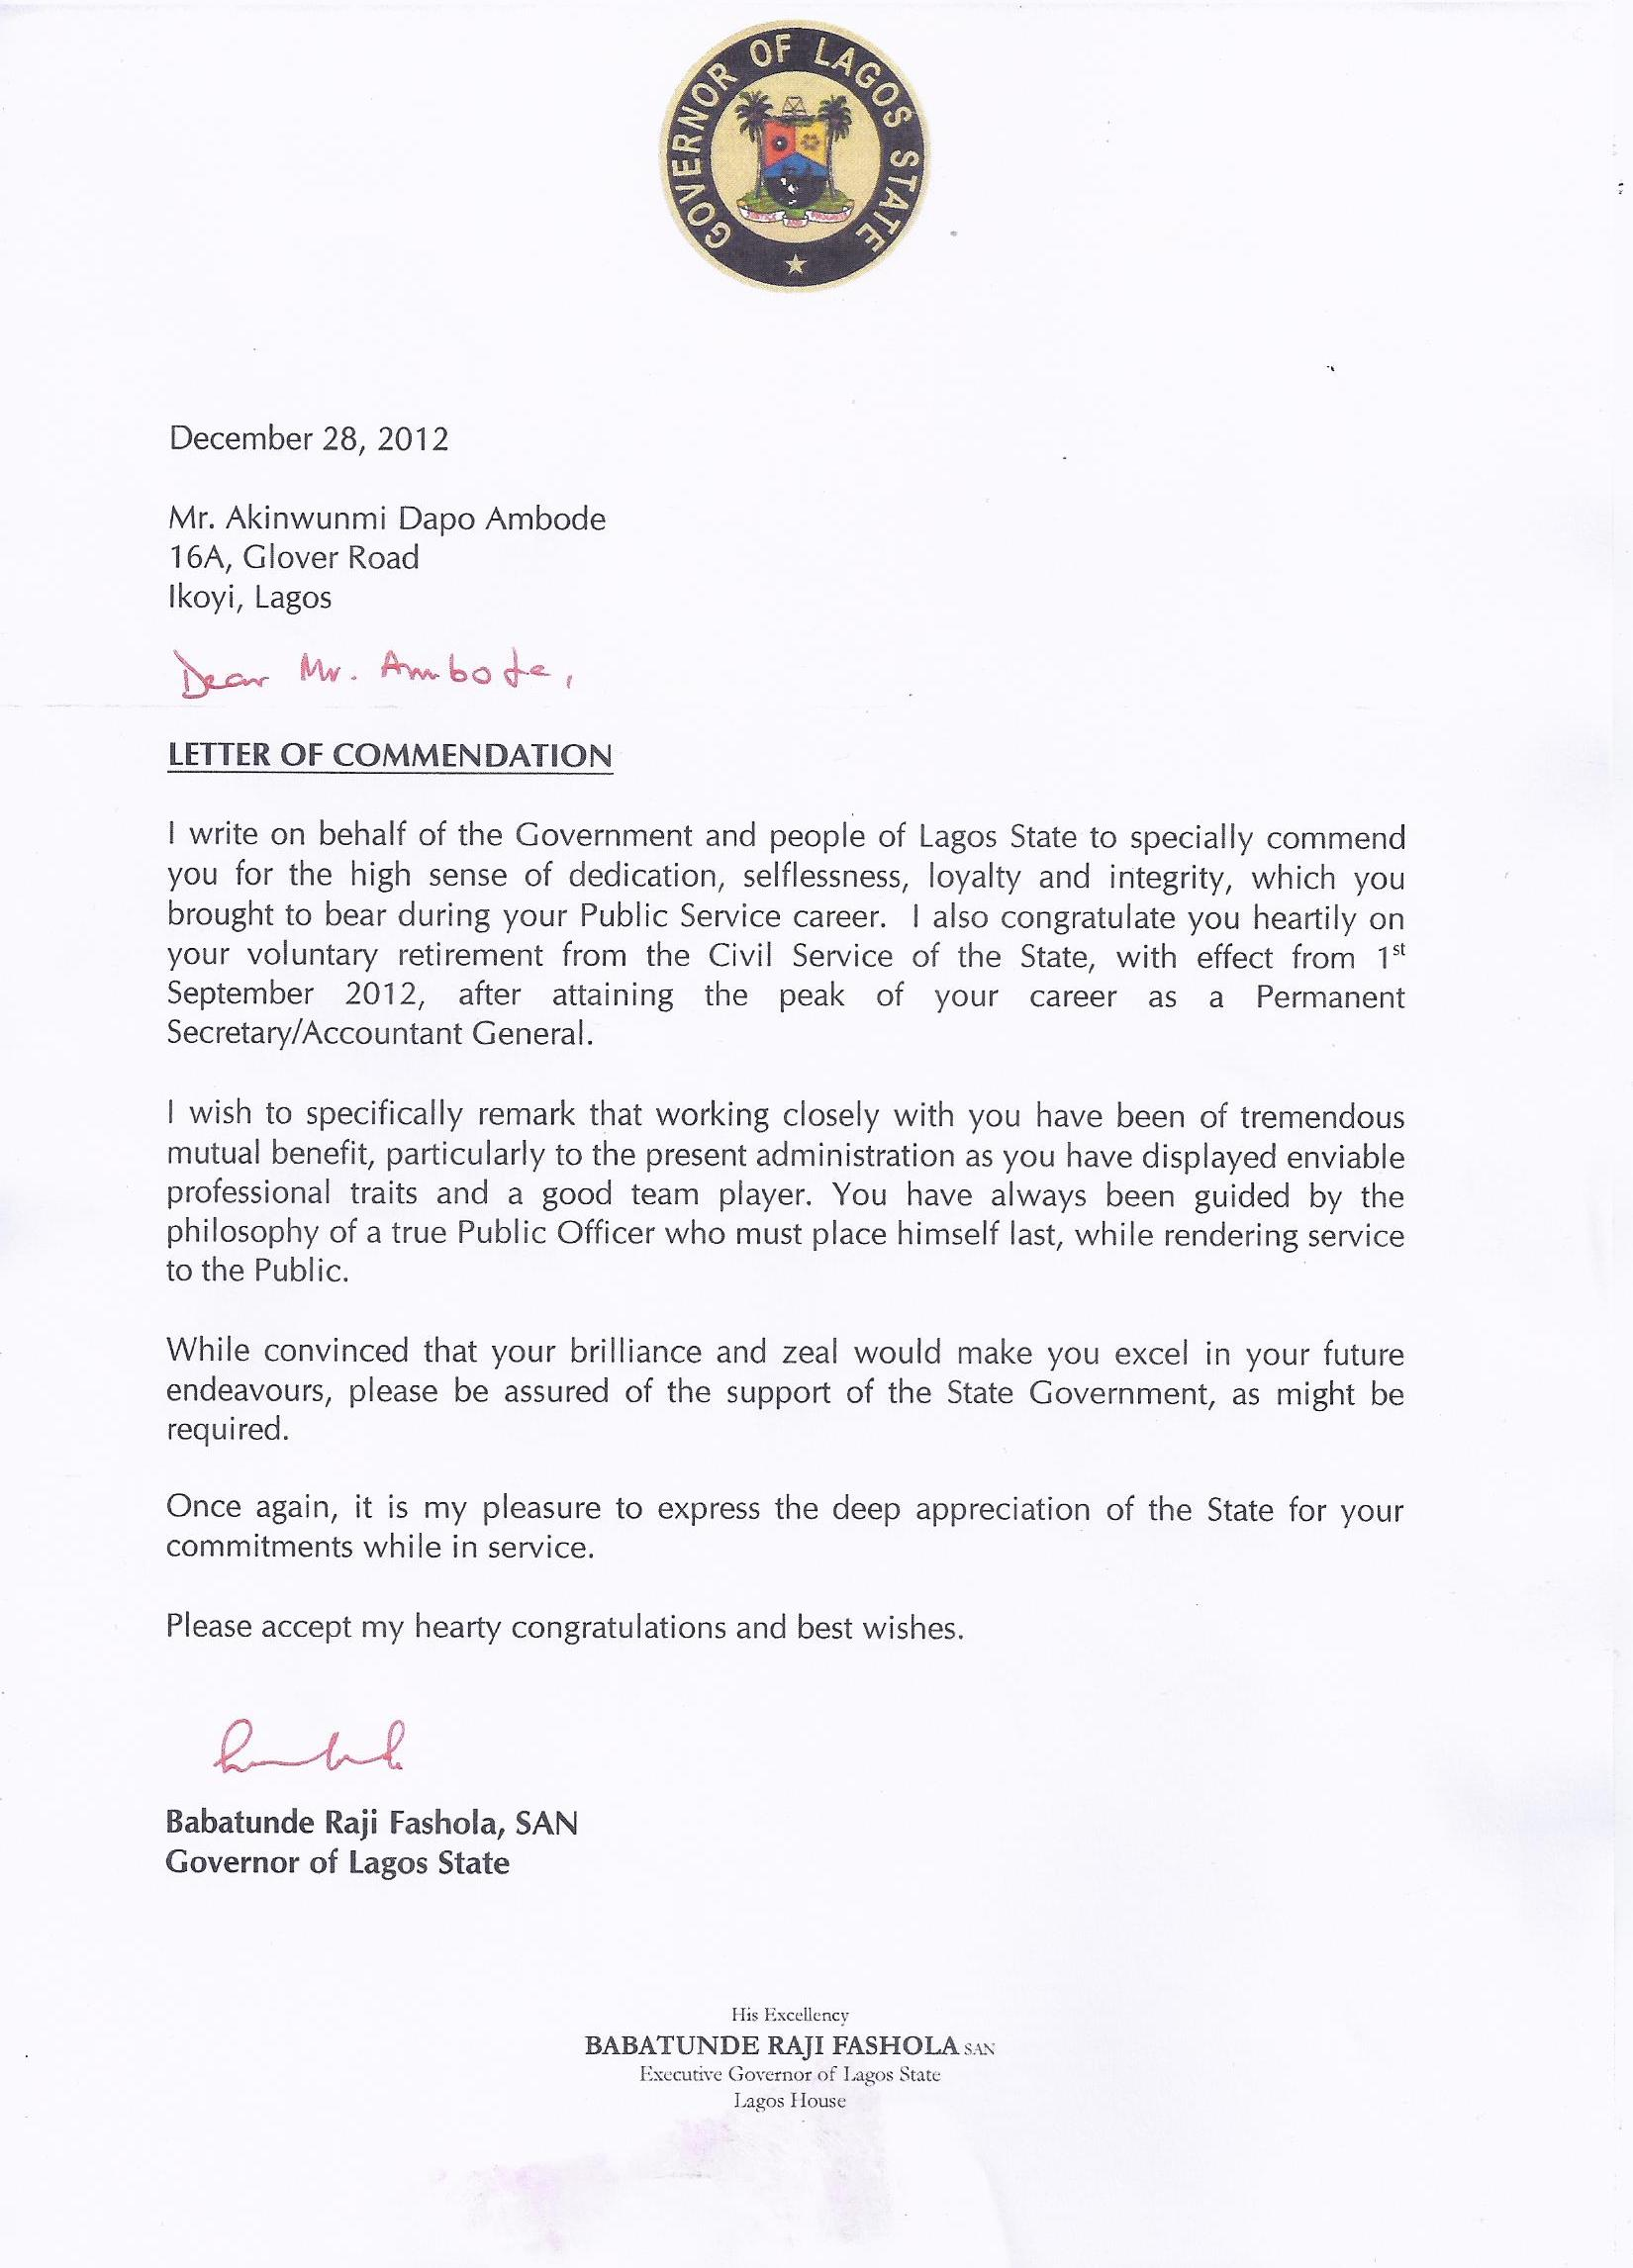 The Letter of Commendation Given to Akinwunmi Ambode Upon His Retirement in 2012